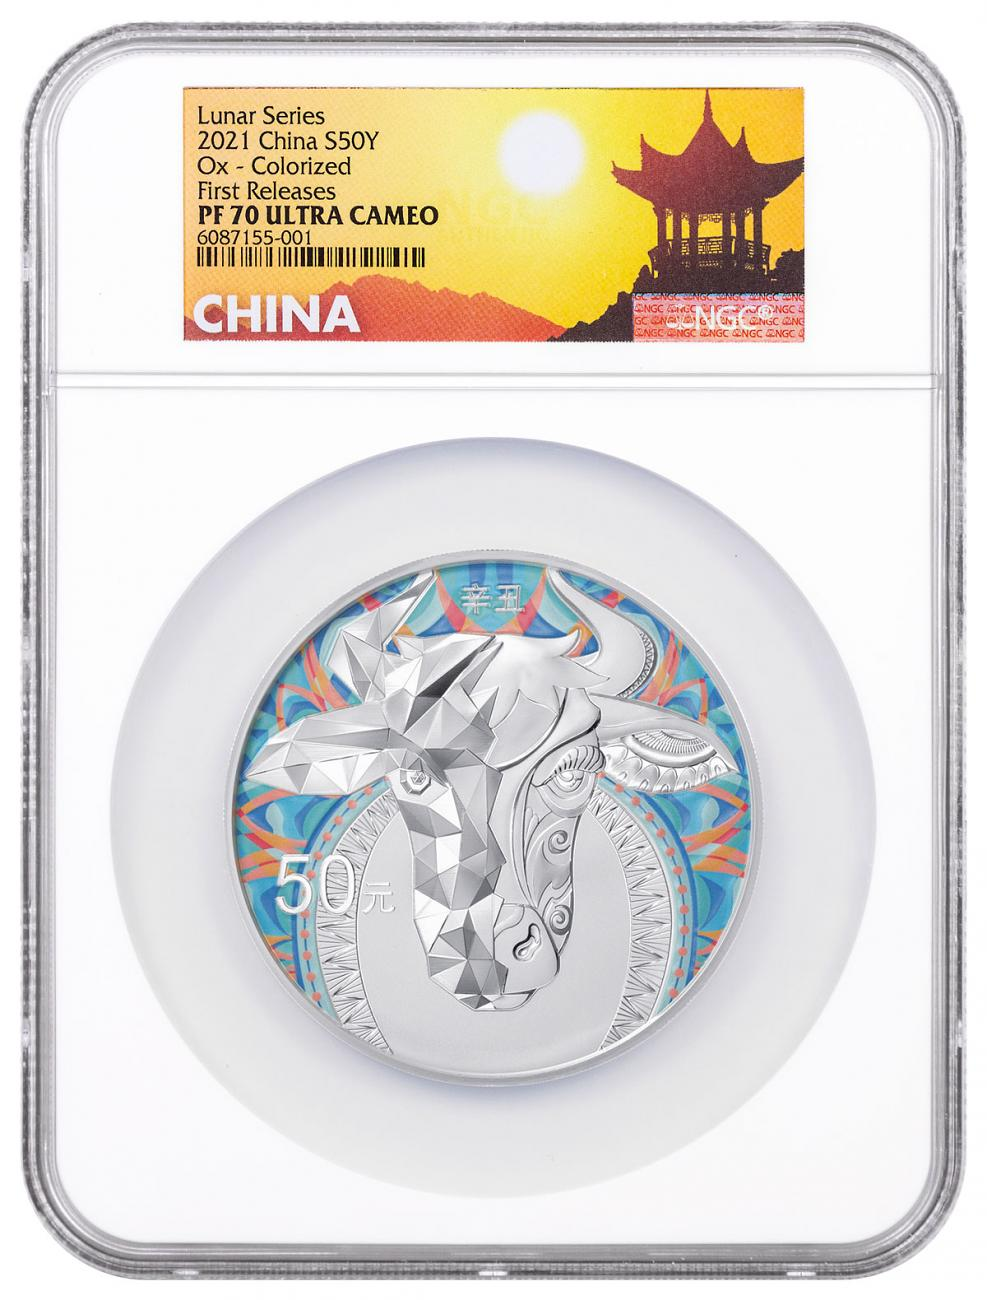 2021 China Year of the Ox 150 g Silver Lunar Colorized Proof ¥50 Coin NGC PF70 UC FR